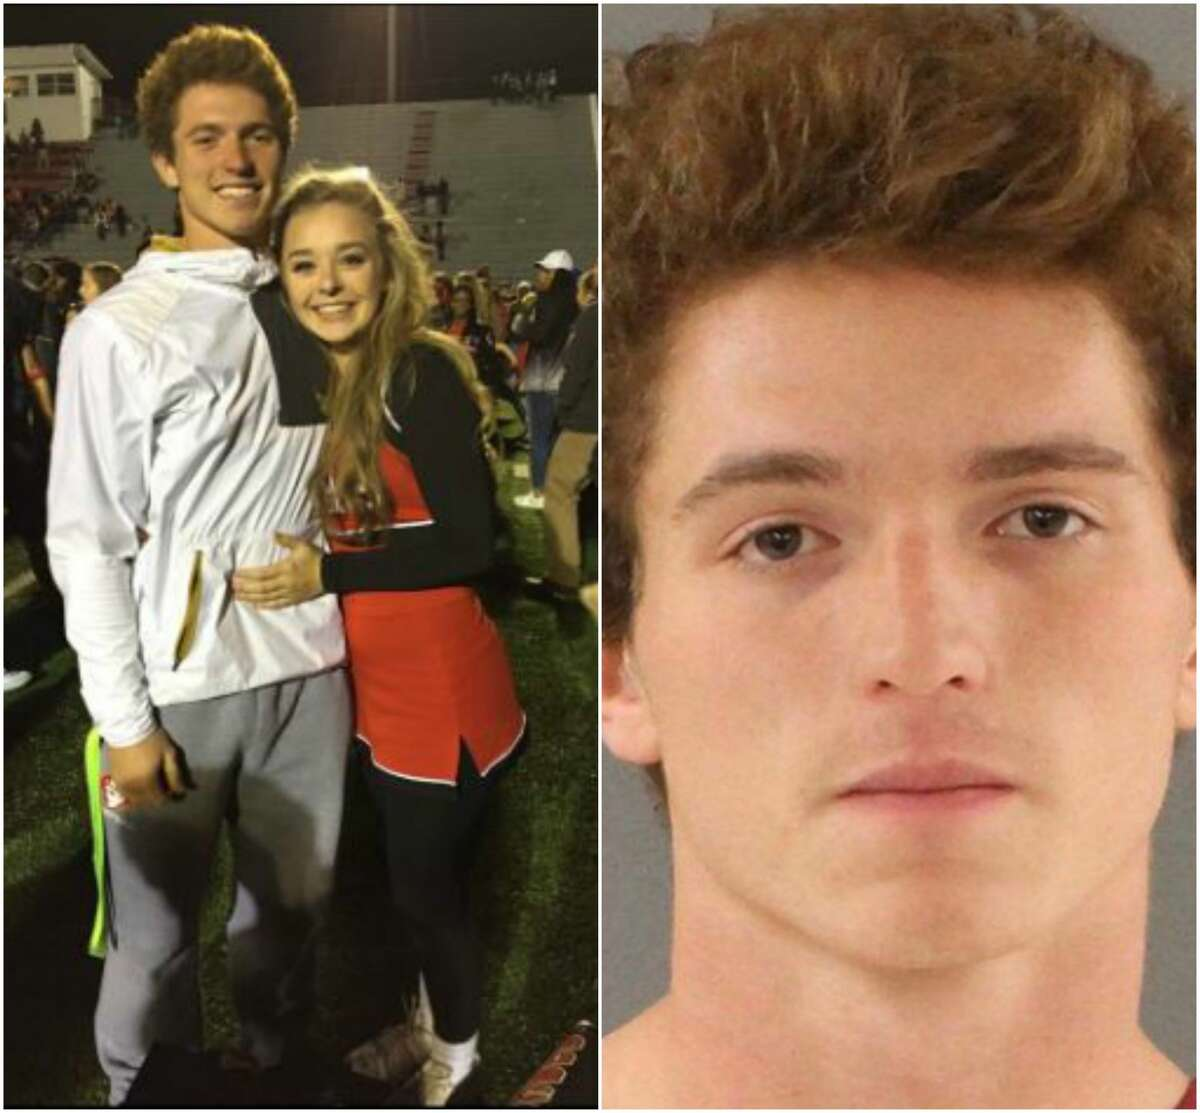 Maryville College football player William Riley Gaul, 18, has been charged with first-degree murder in the death of his alleged girlfriend Emma Walker, 16.